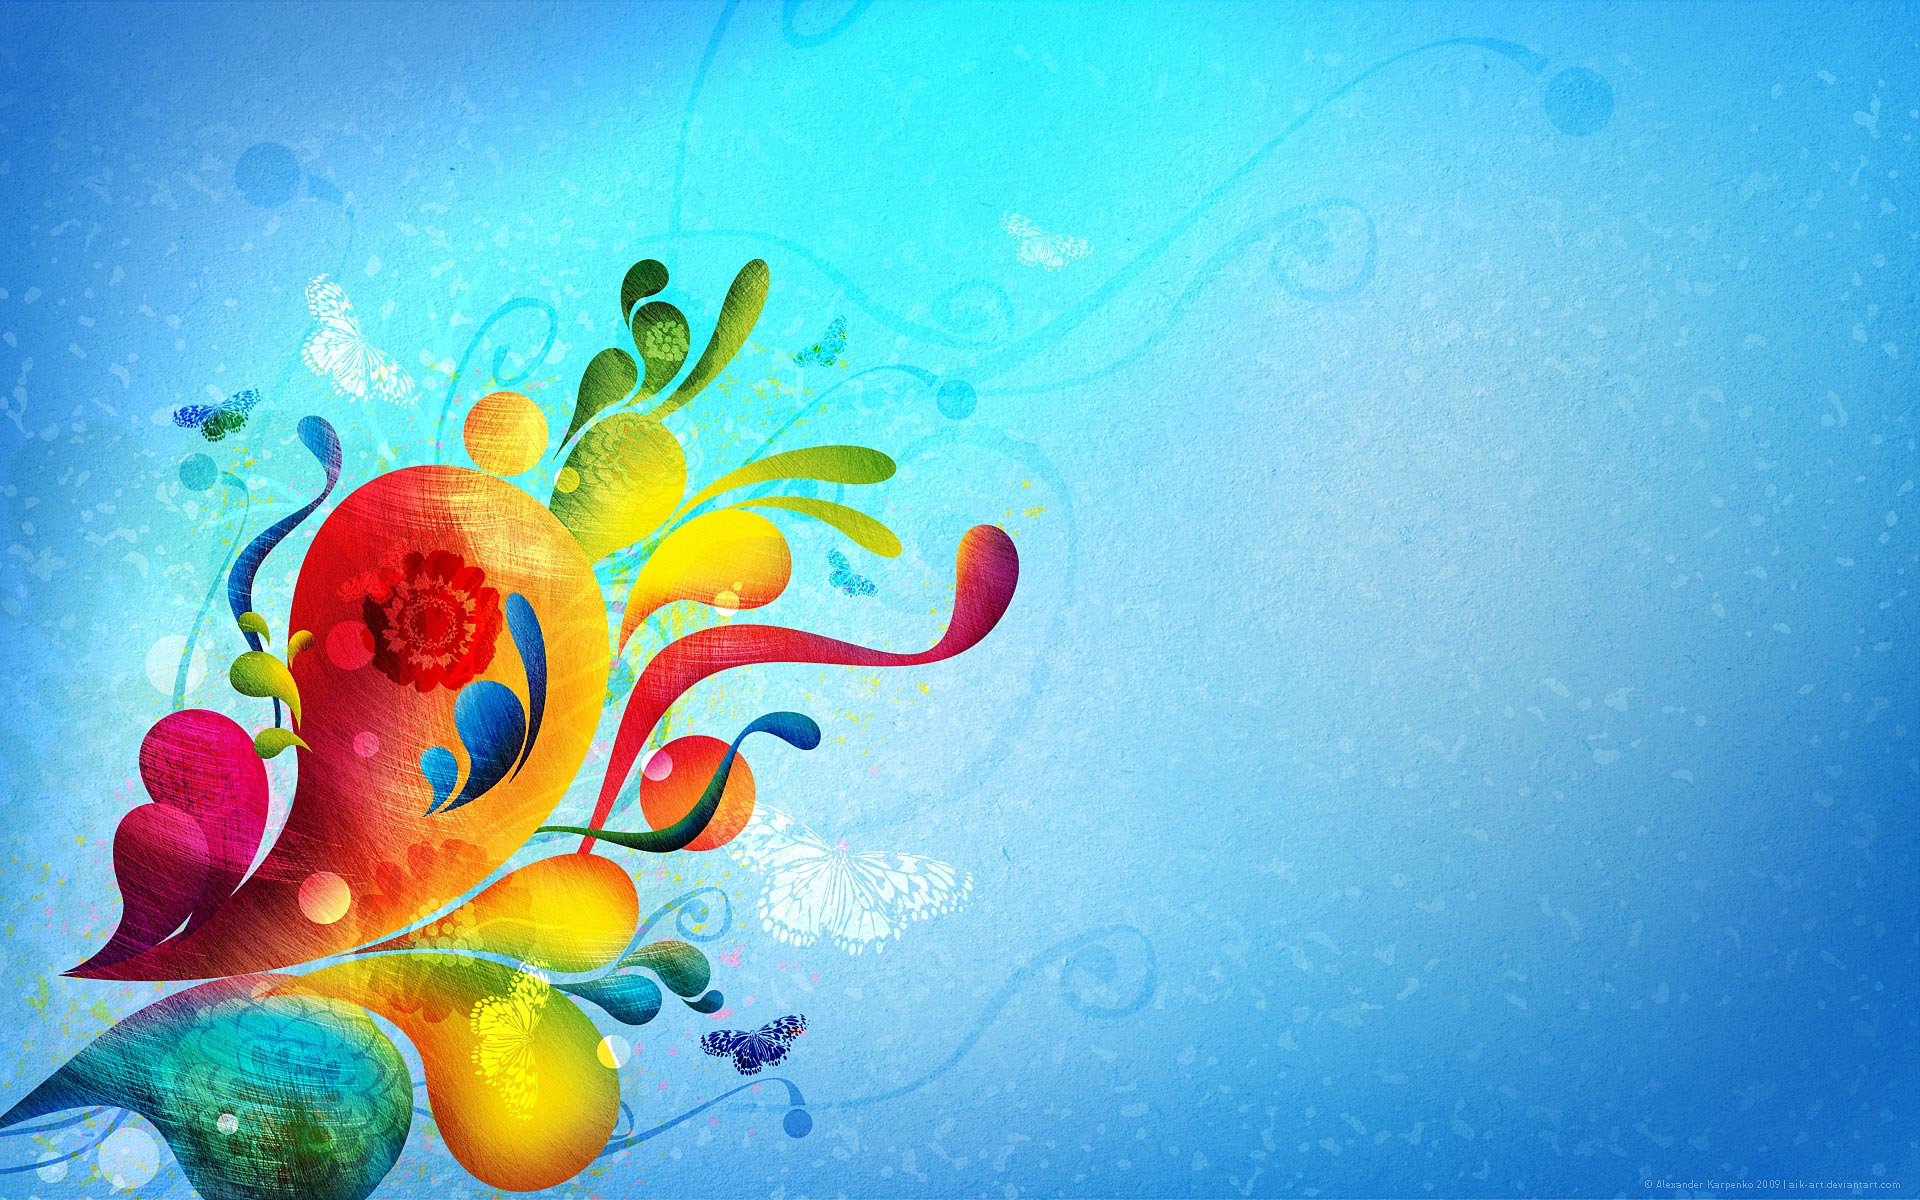 Collection of Graphic Art Wallpaper on HDWallpapers